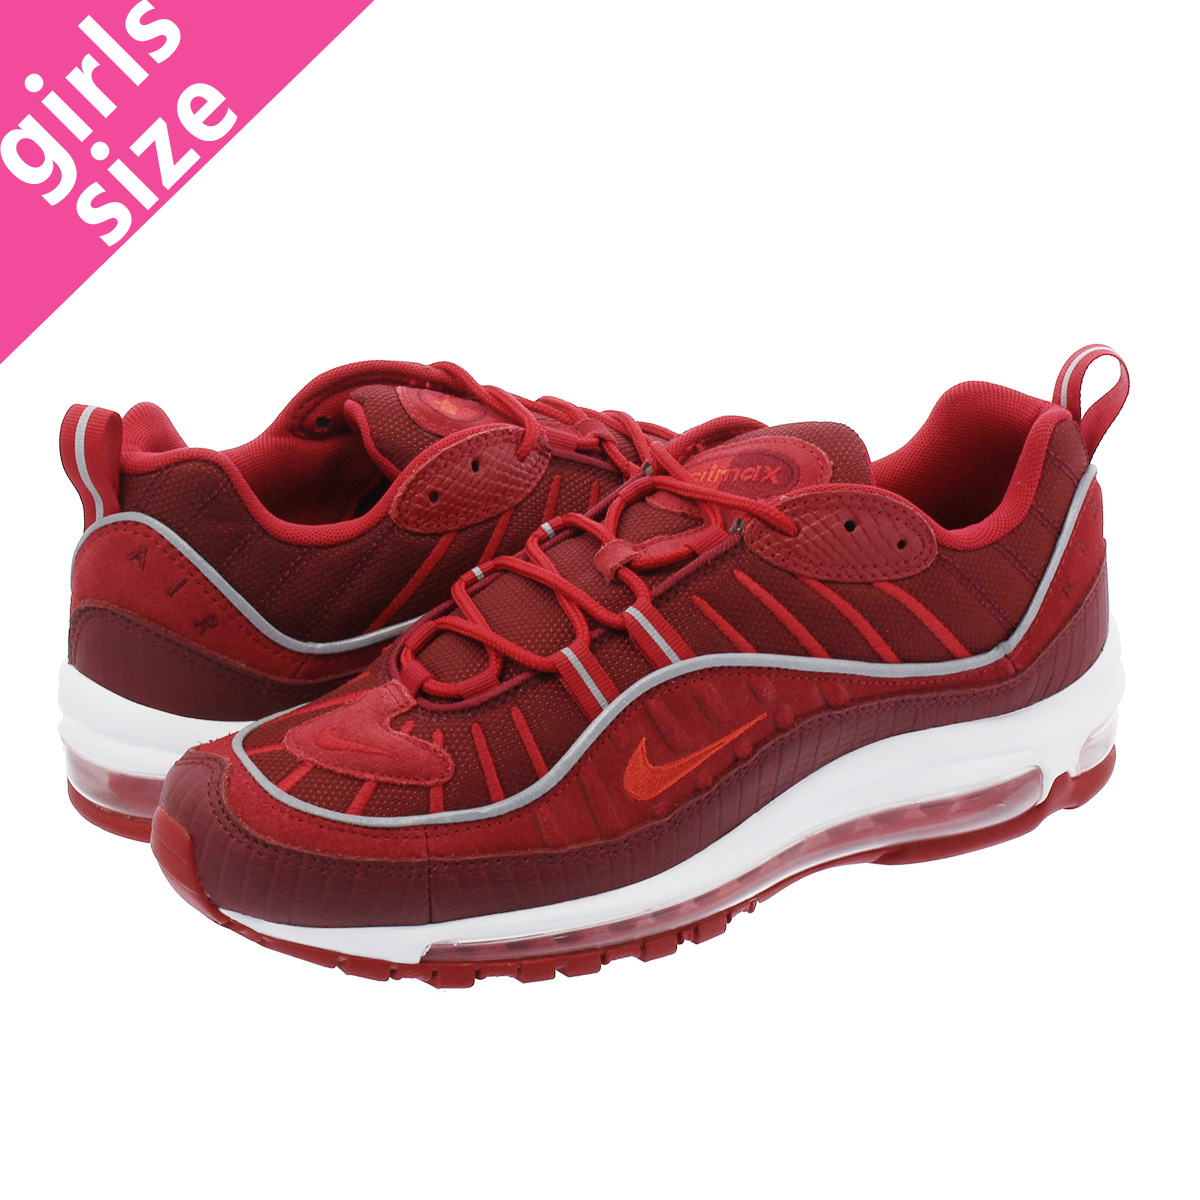 best loved a0b5a 8ec02 NIKE AIR MAX 98 SE Kie Ney AMAX 98 SE TEAM RED HABANERO RED GYM RED WHITE  ao9380-600-l